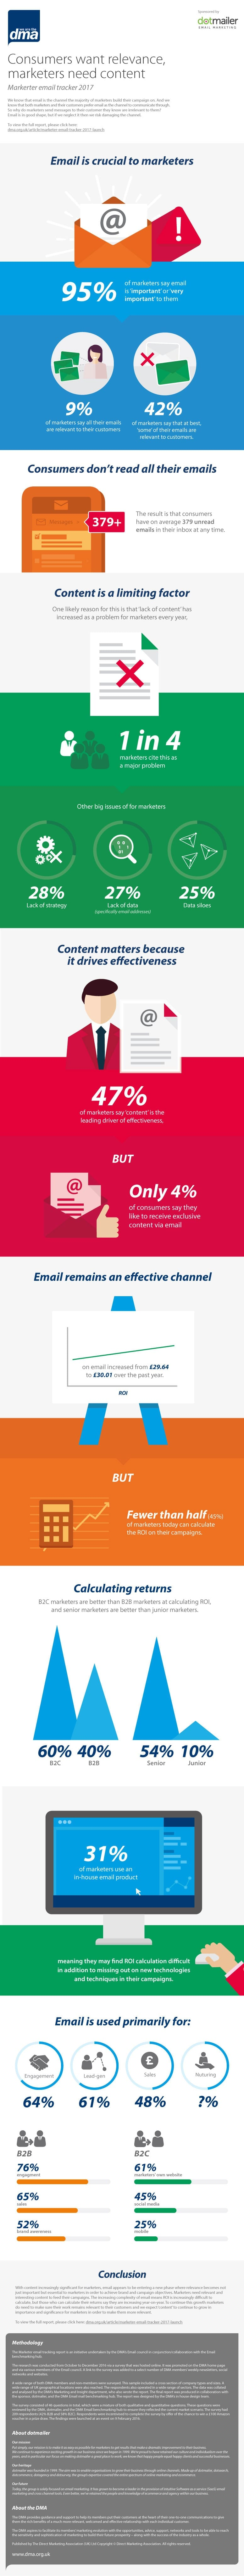 Infographic: DMA's latest Marketer email tracker 2017 report